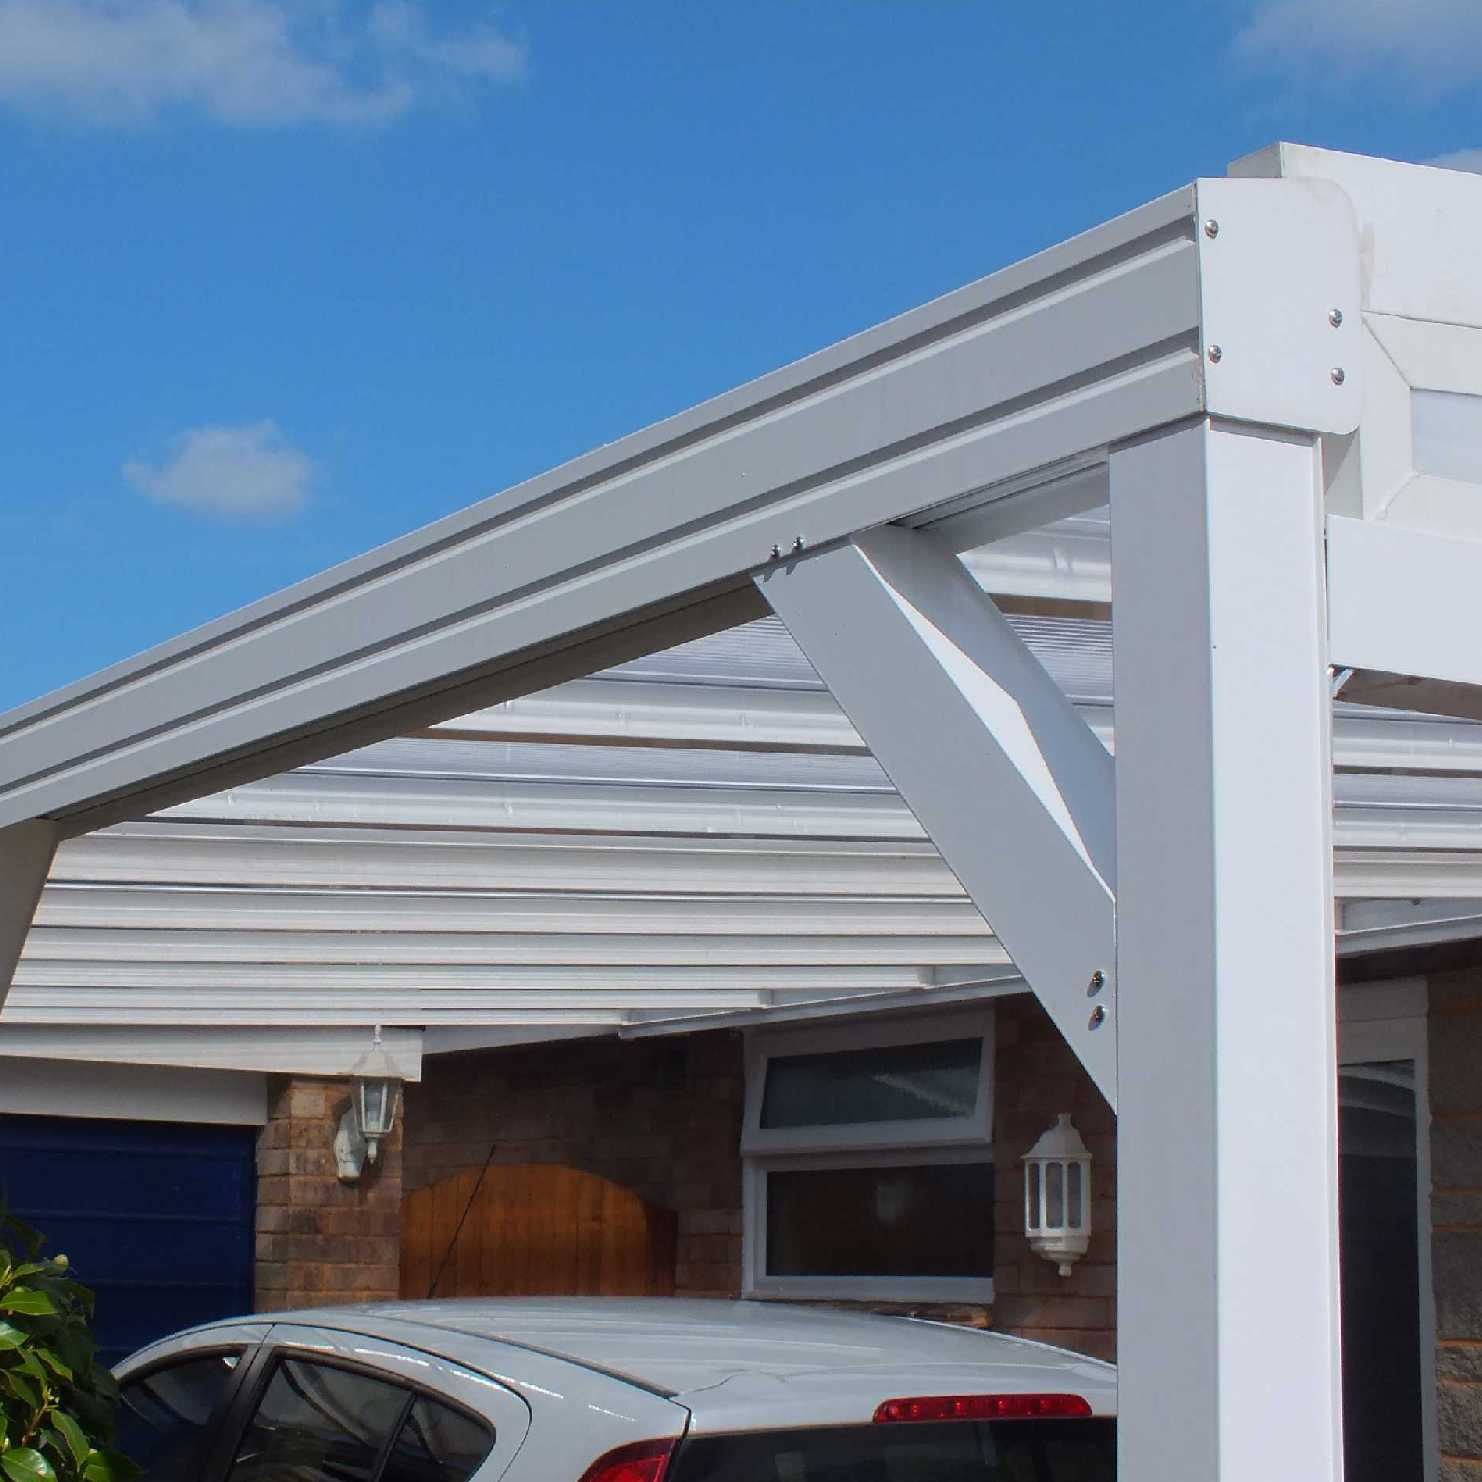 Great deals on Omega Smart Lean-To Canopy with 16mm Polycarbonate Glazing - 11.2m (W) x 4.5m (P), (5) Supporting Posts